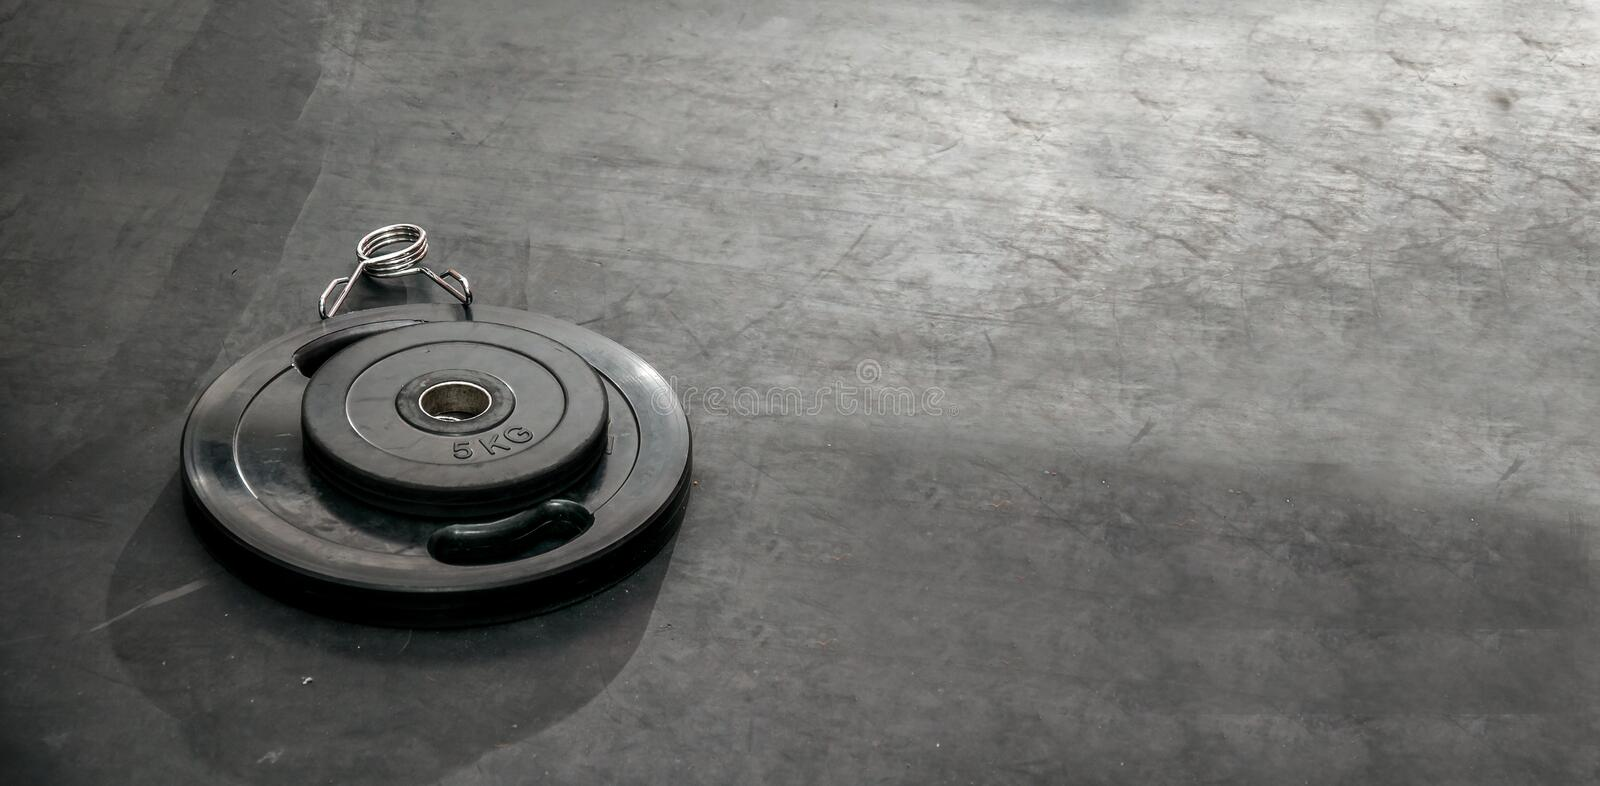 Bunch of heavy black barbell weight plates on the gym floor prepared for hard core fitness workout strong contrast dark image. Gym bodybuilding workout concept stock photo